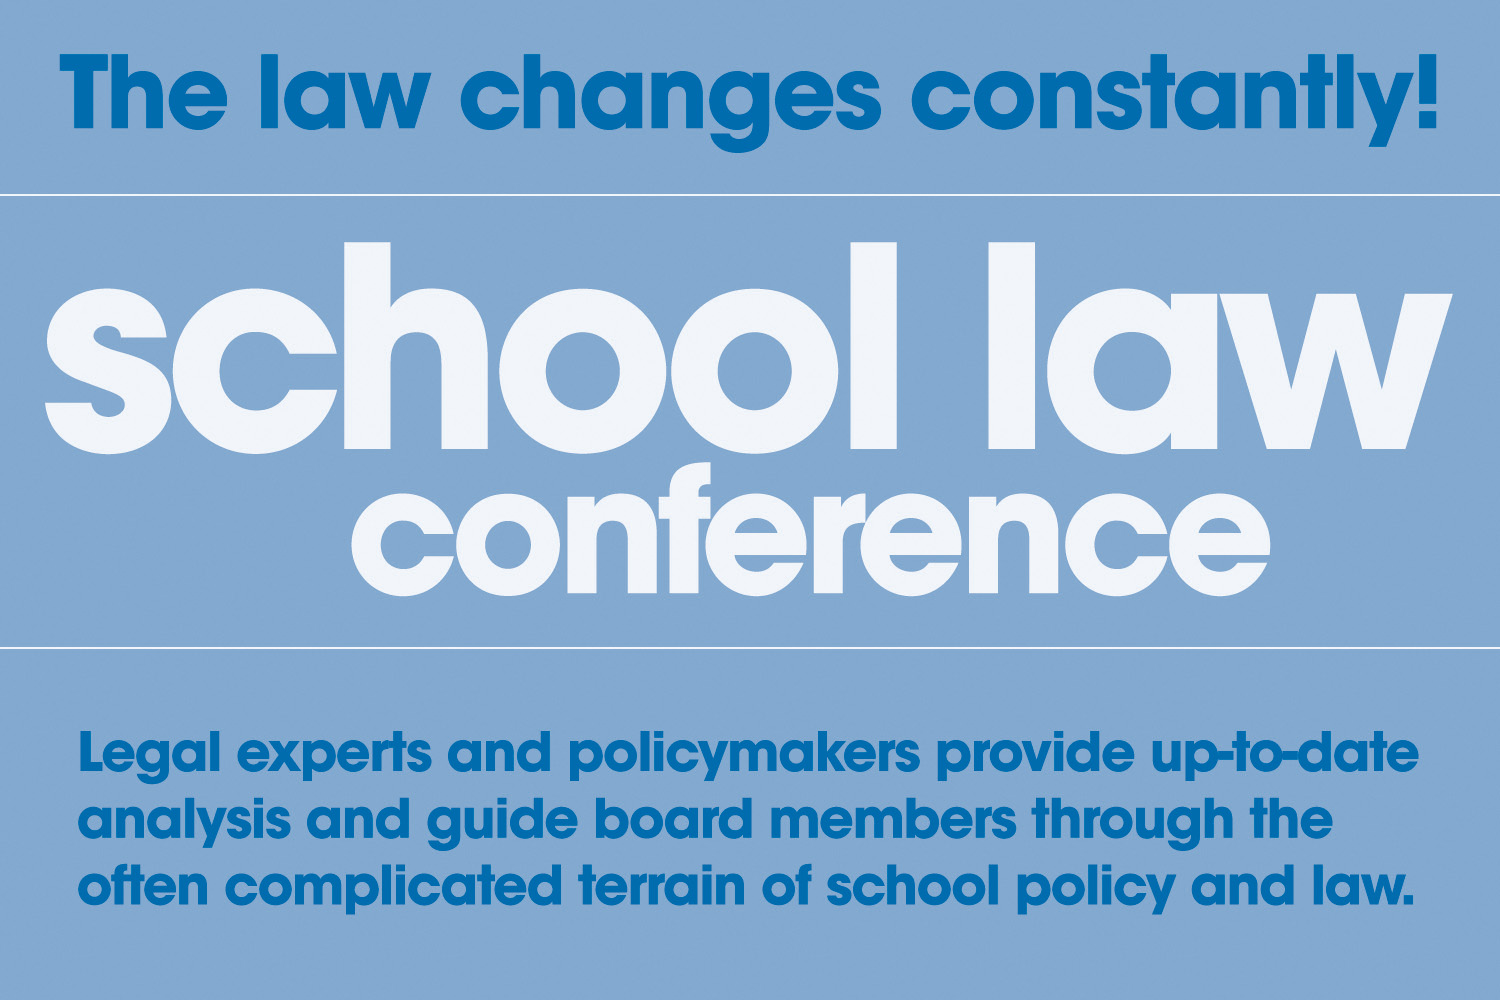 SCHOOL LAW CONFERENCE